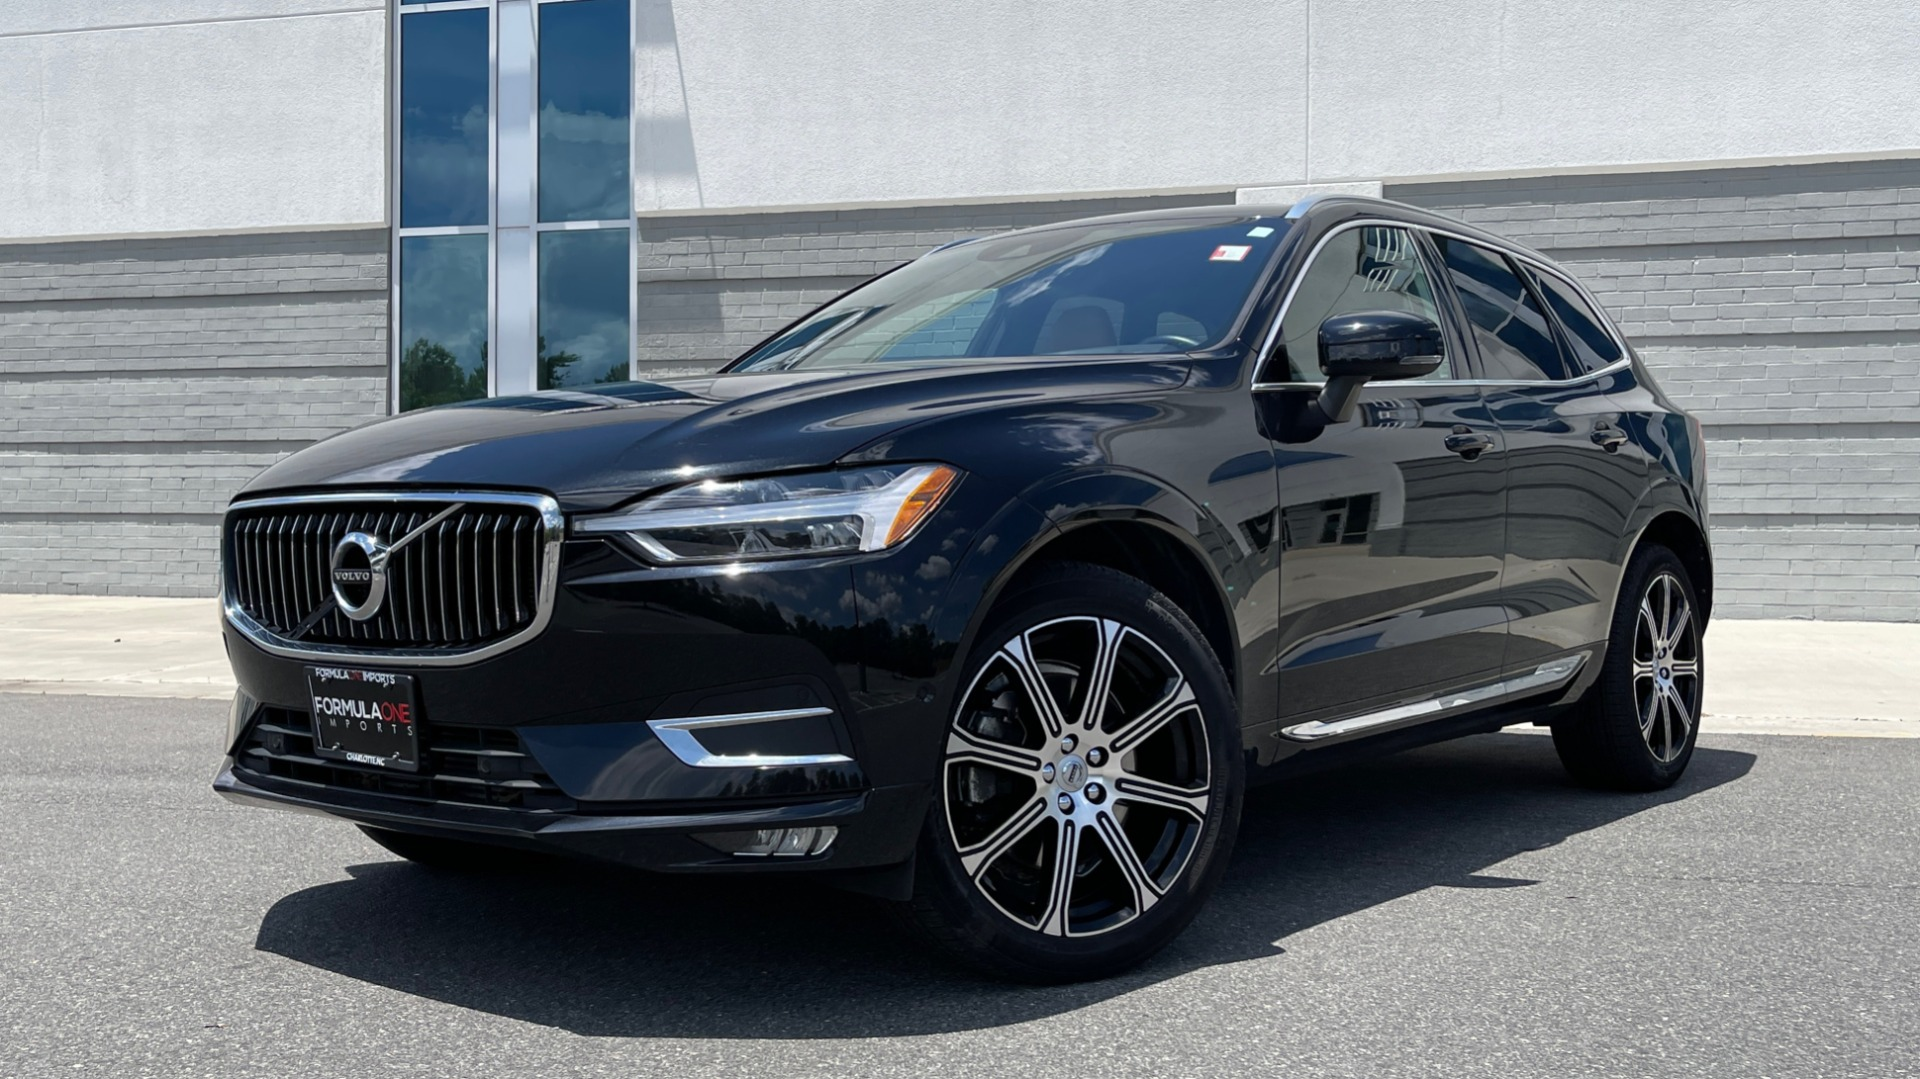 Used 2018 Volvo XC60 INSCRIPTION 2.0L TURBO SUV / AWD / NAV / SUNROOF / REARVIEW for sale $38,795 at Formula Imports in Charlotte NC 28227 1